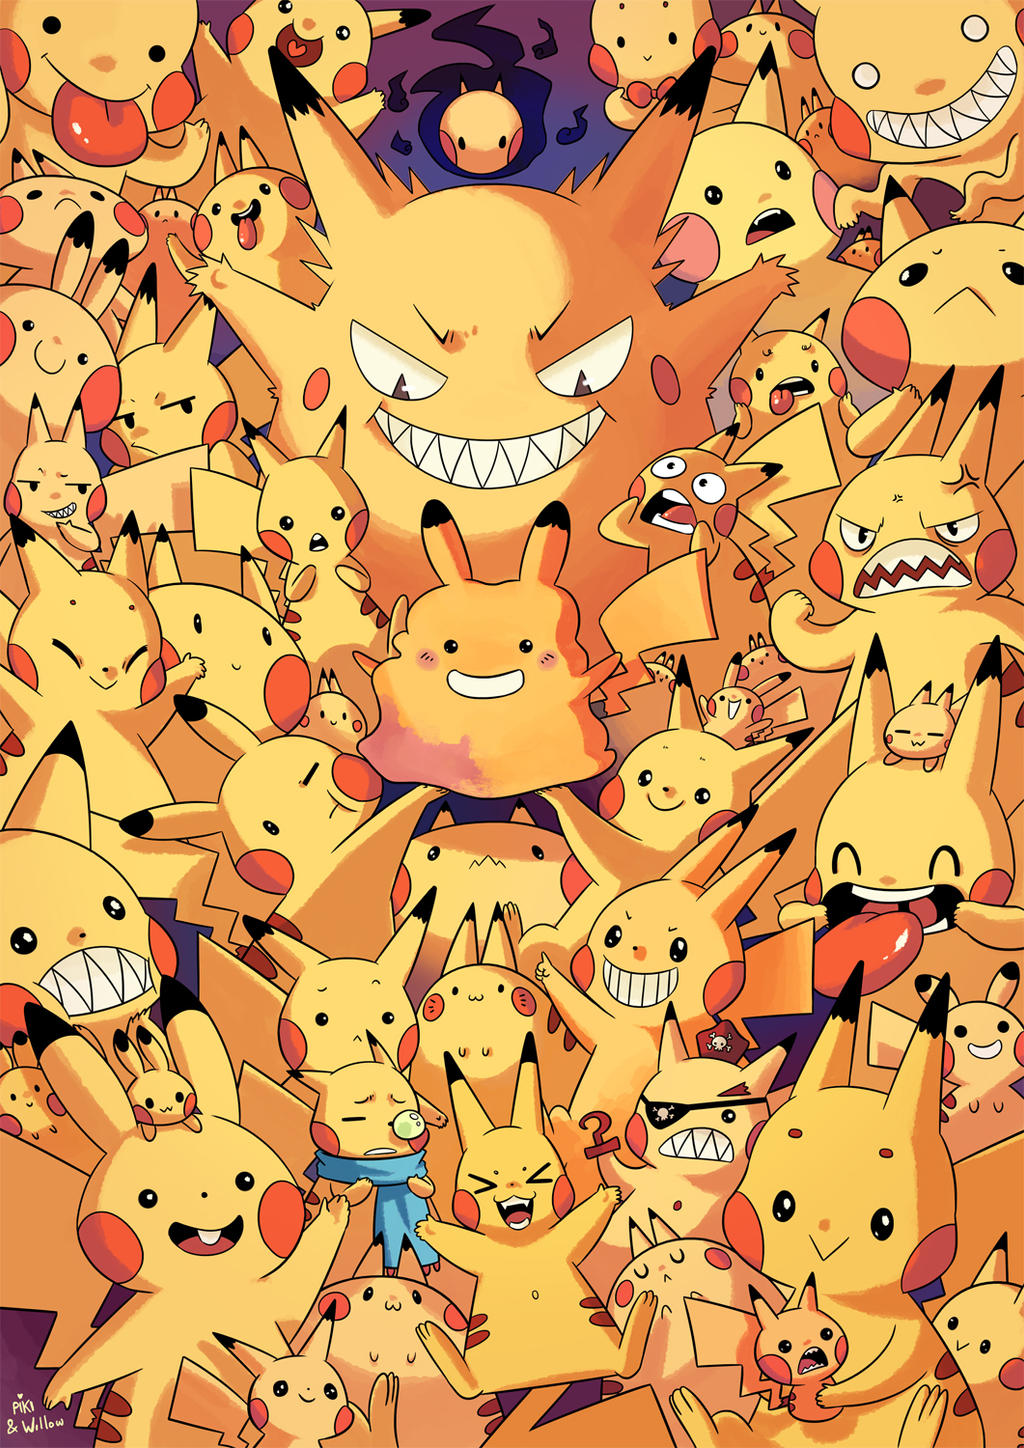 Full of Pikachus - Collab with Pikila